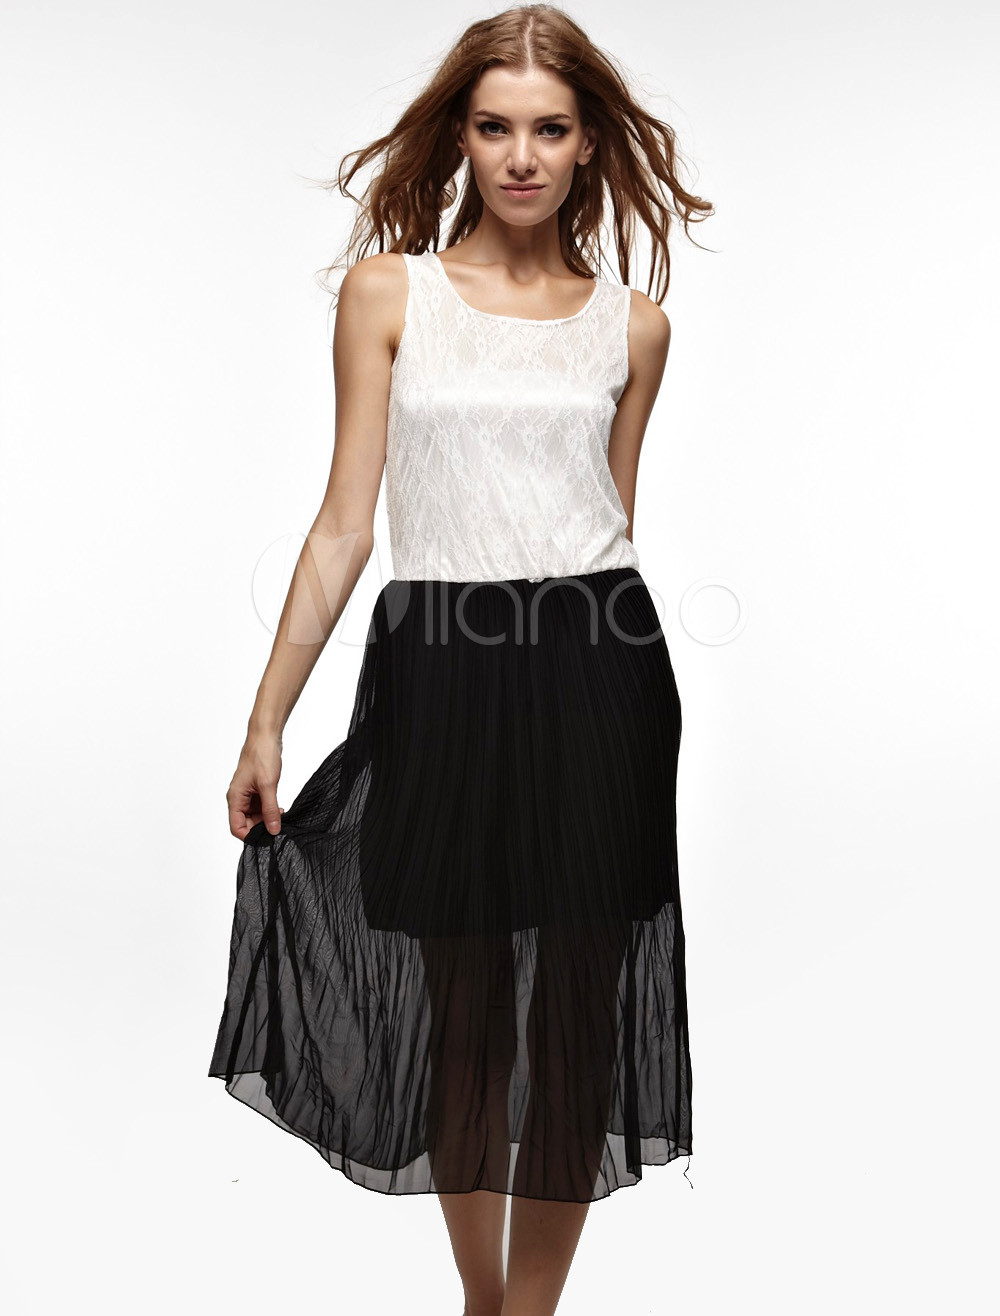 Unique Black White Sleeveless Lace Polyester Womens Summer Dress